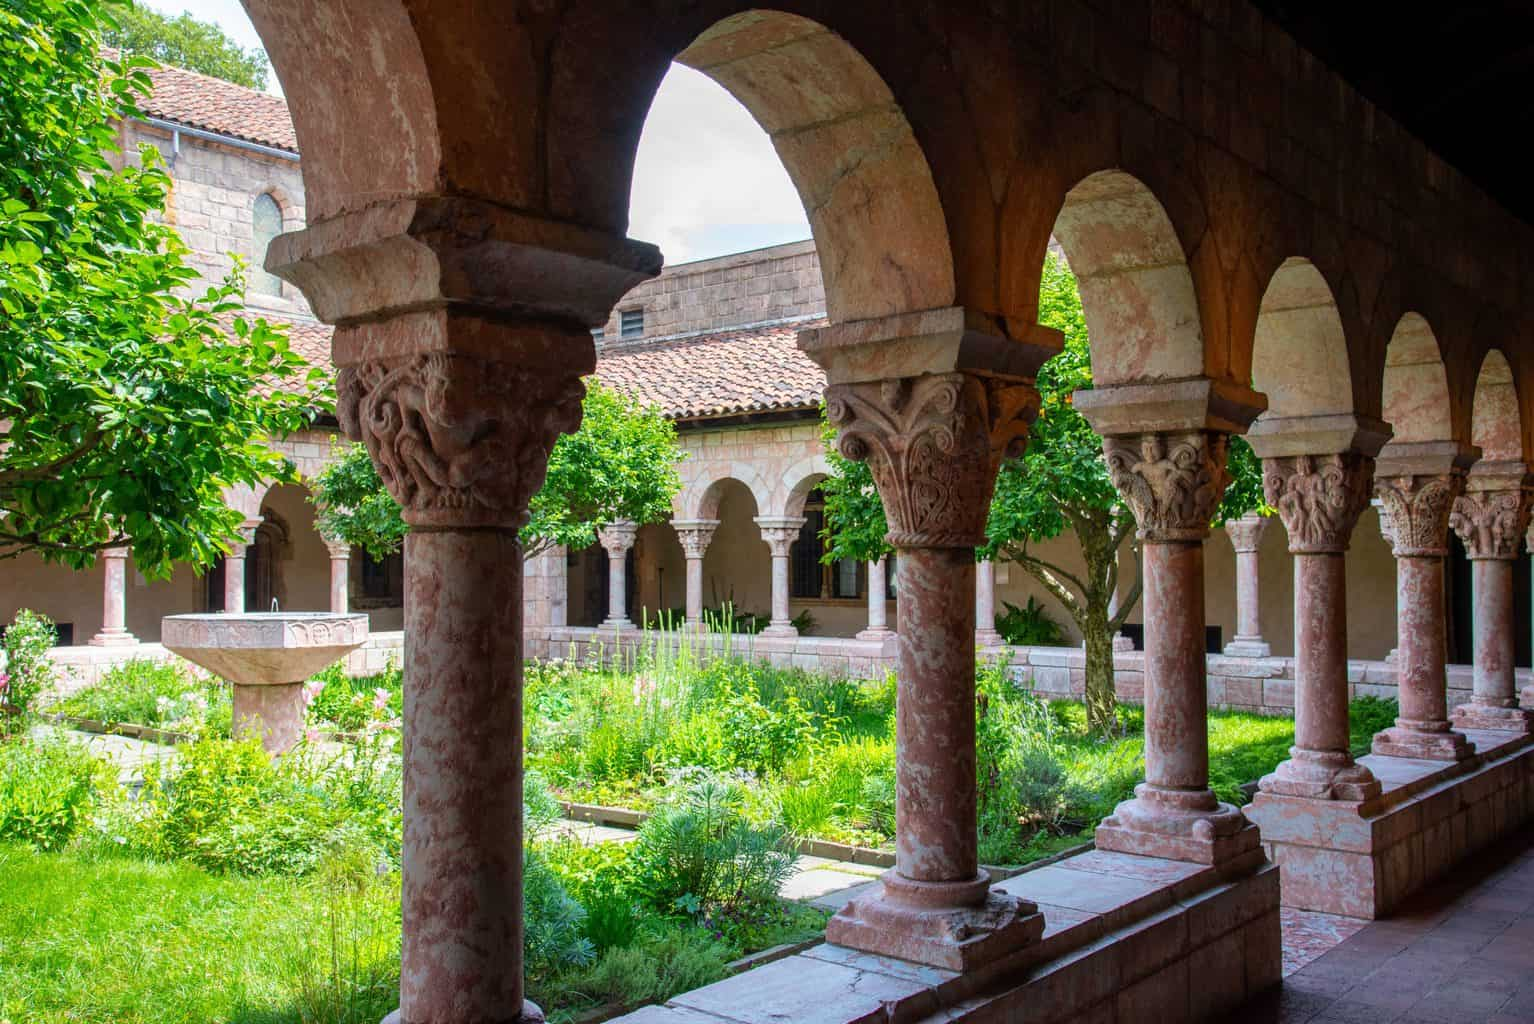 The beautiful European and medieval cloister in Washington Heights, NYC.